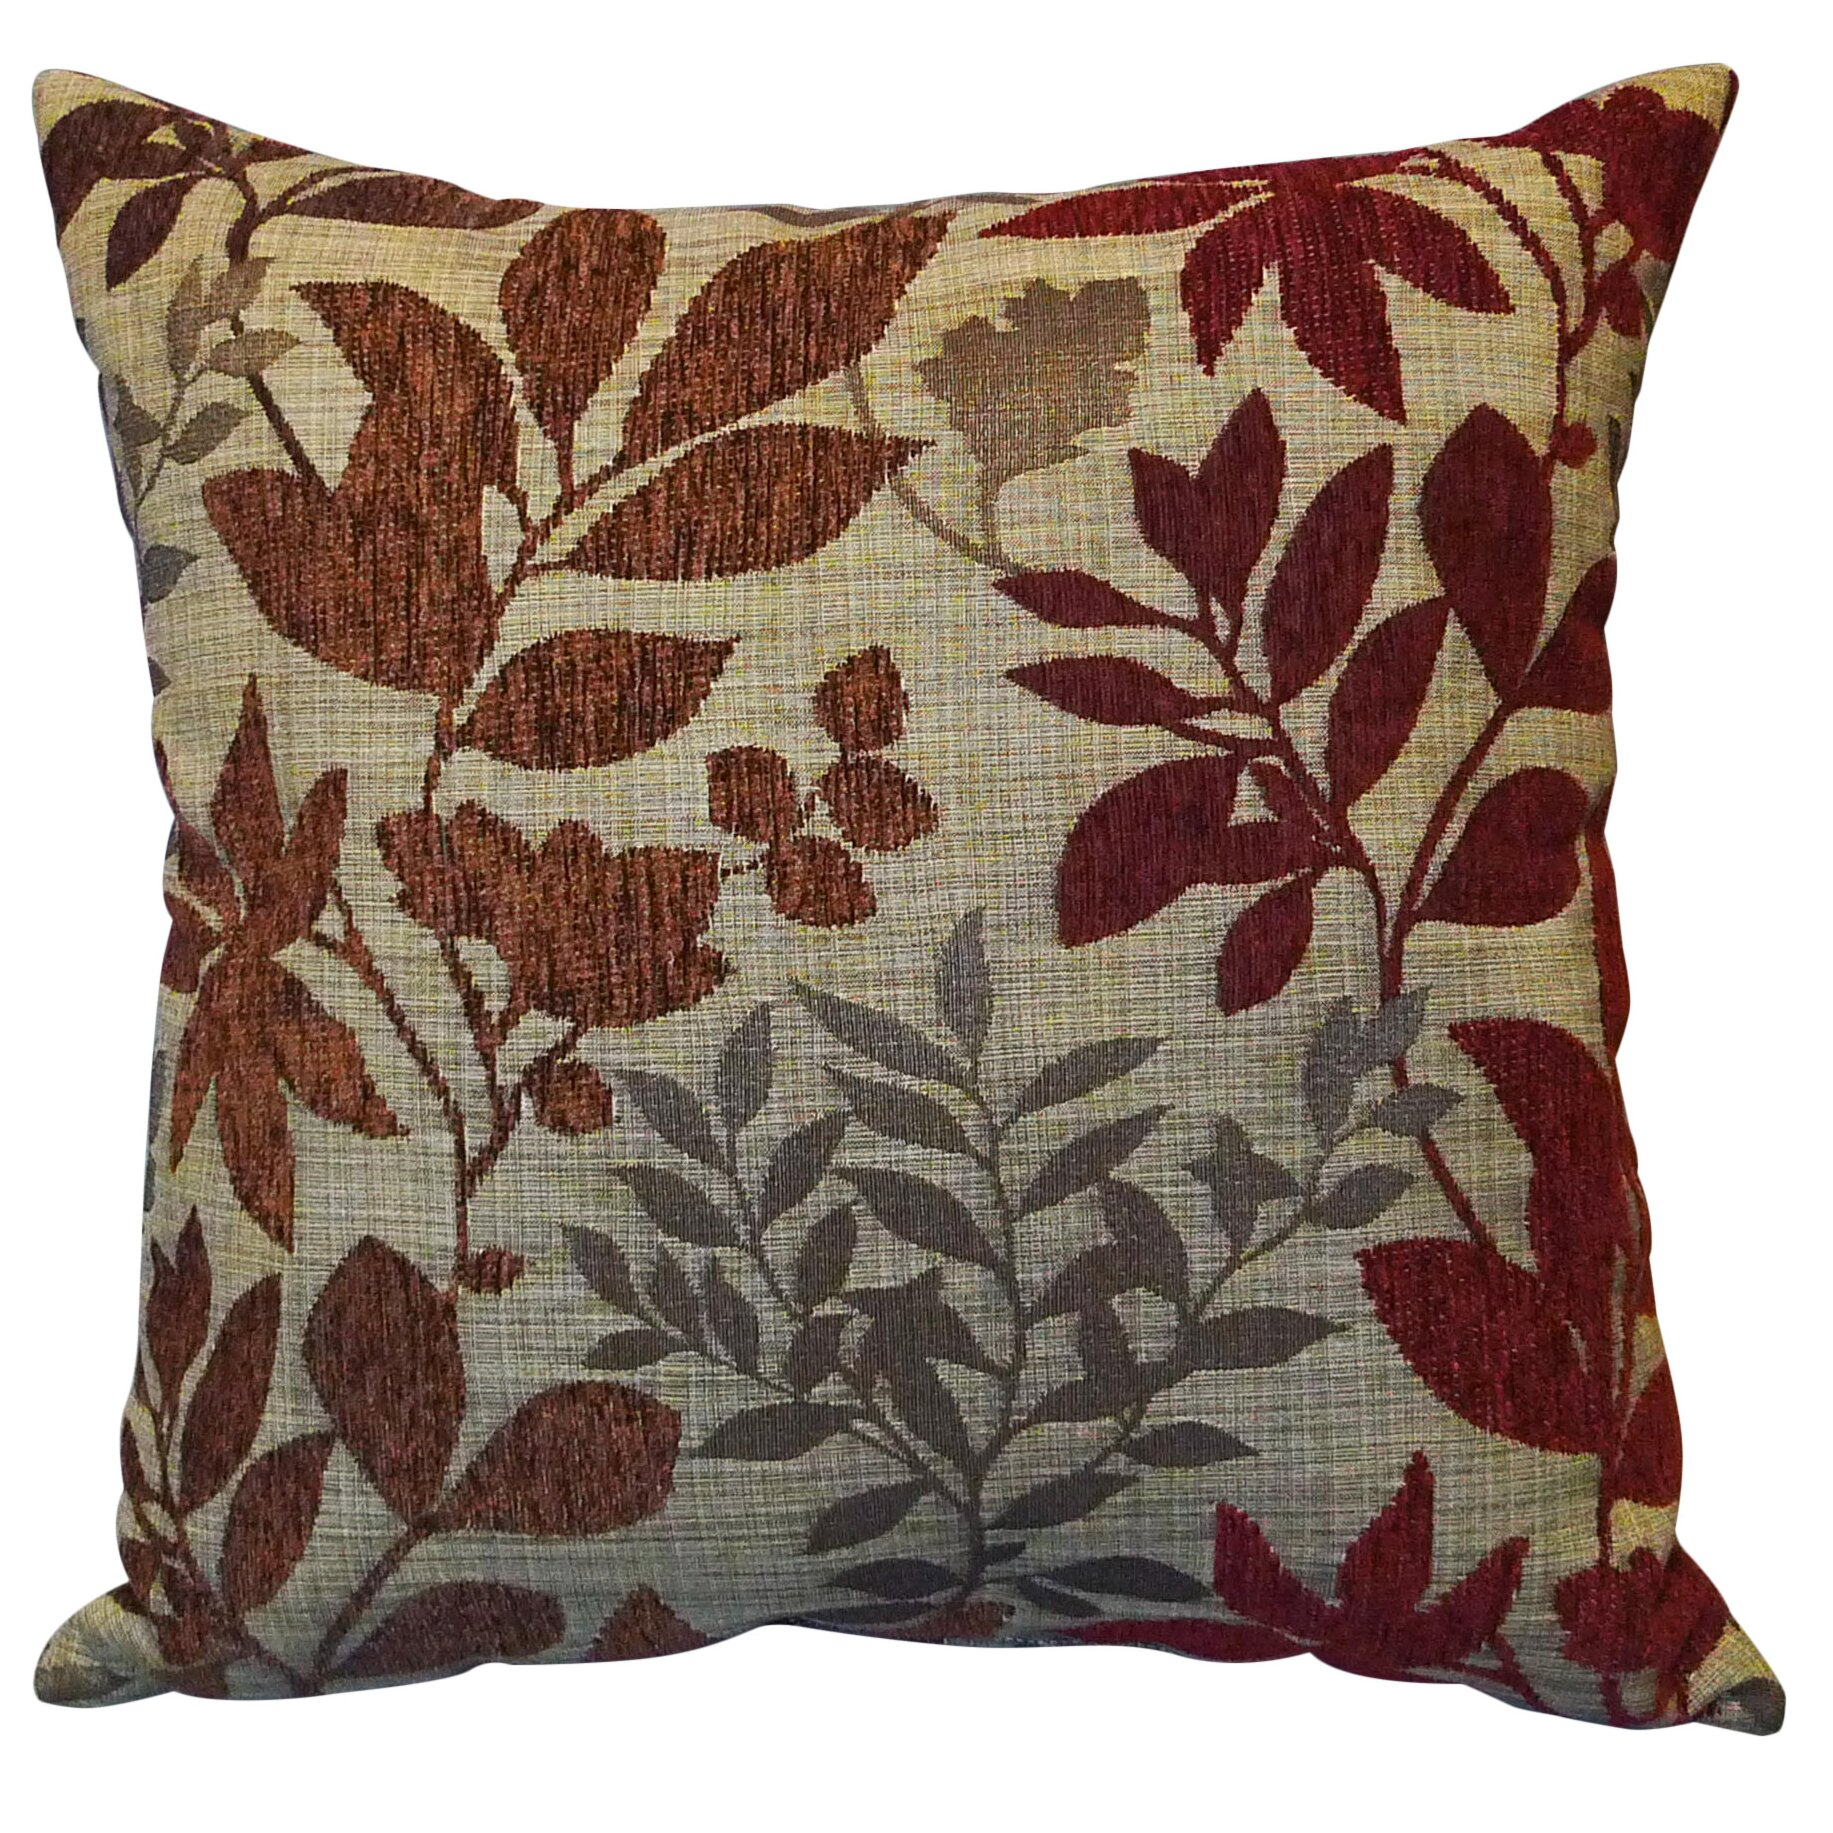 Jacquard Decorative Pillows : Essential Bristol Chenille Jacquard Leaf Throw Pillow & Reviews Wayfair.ca